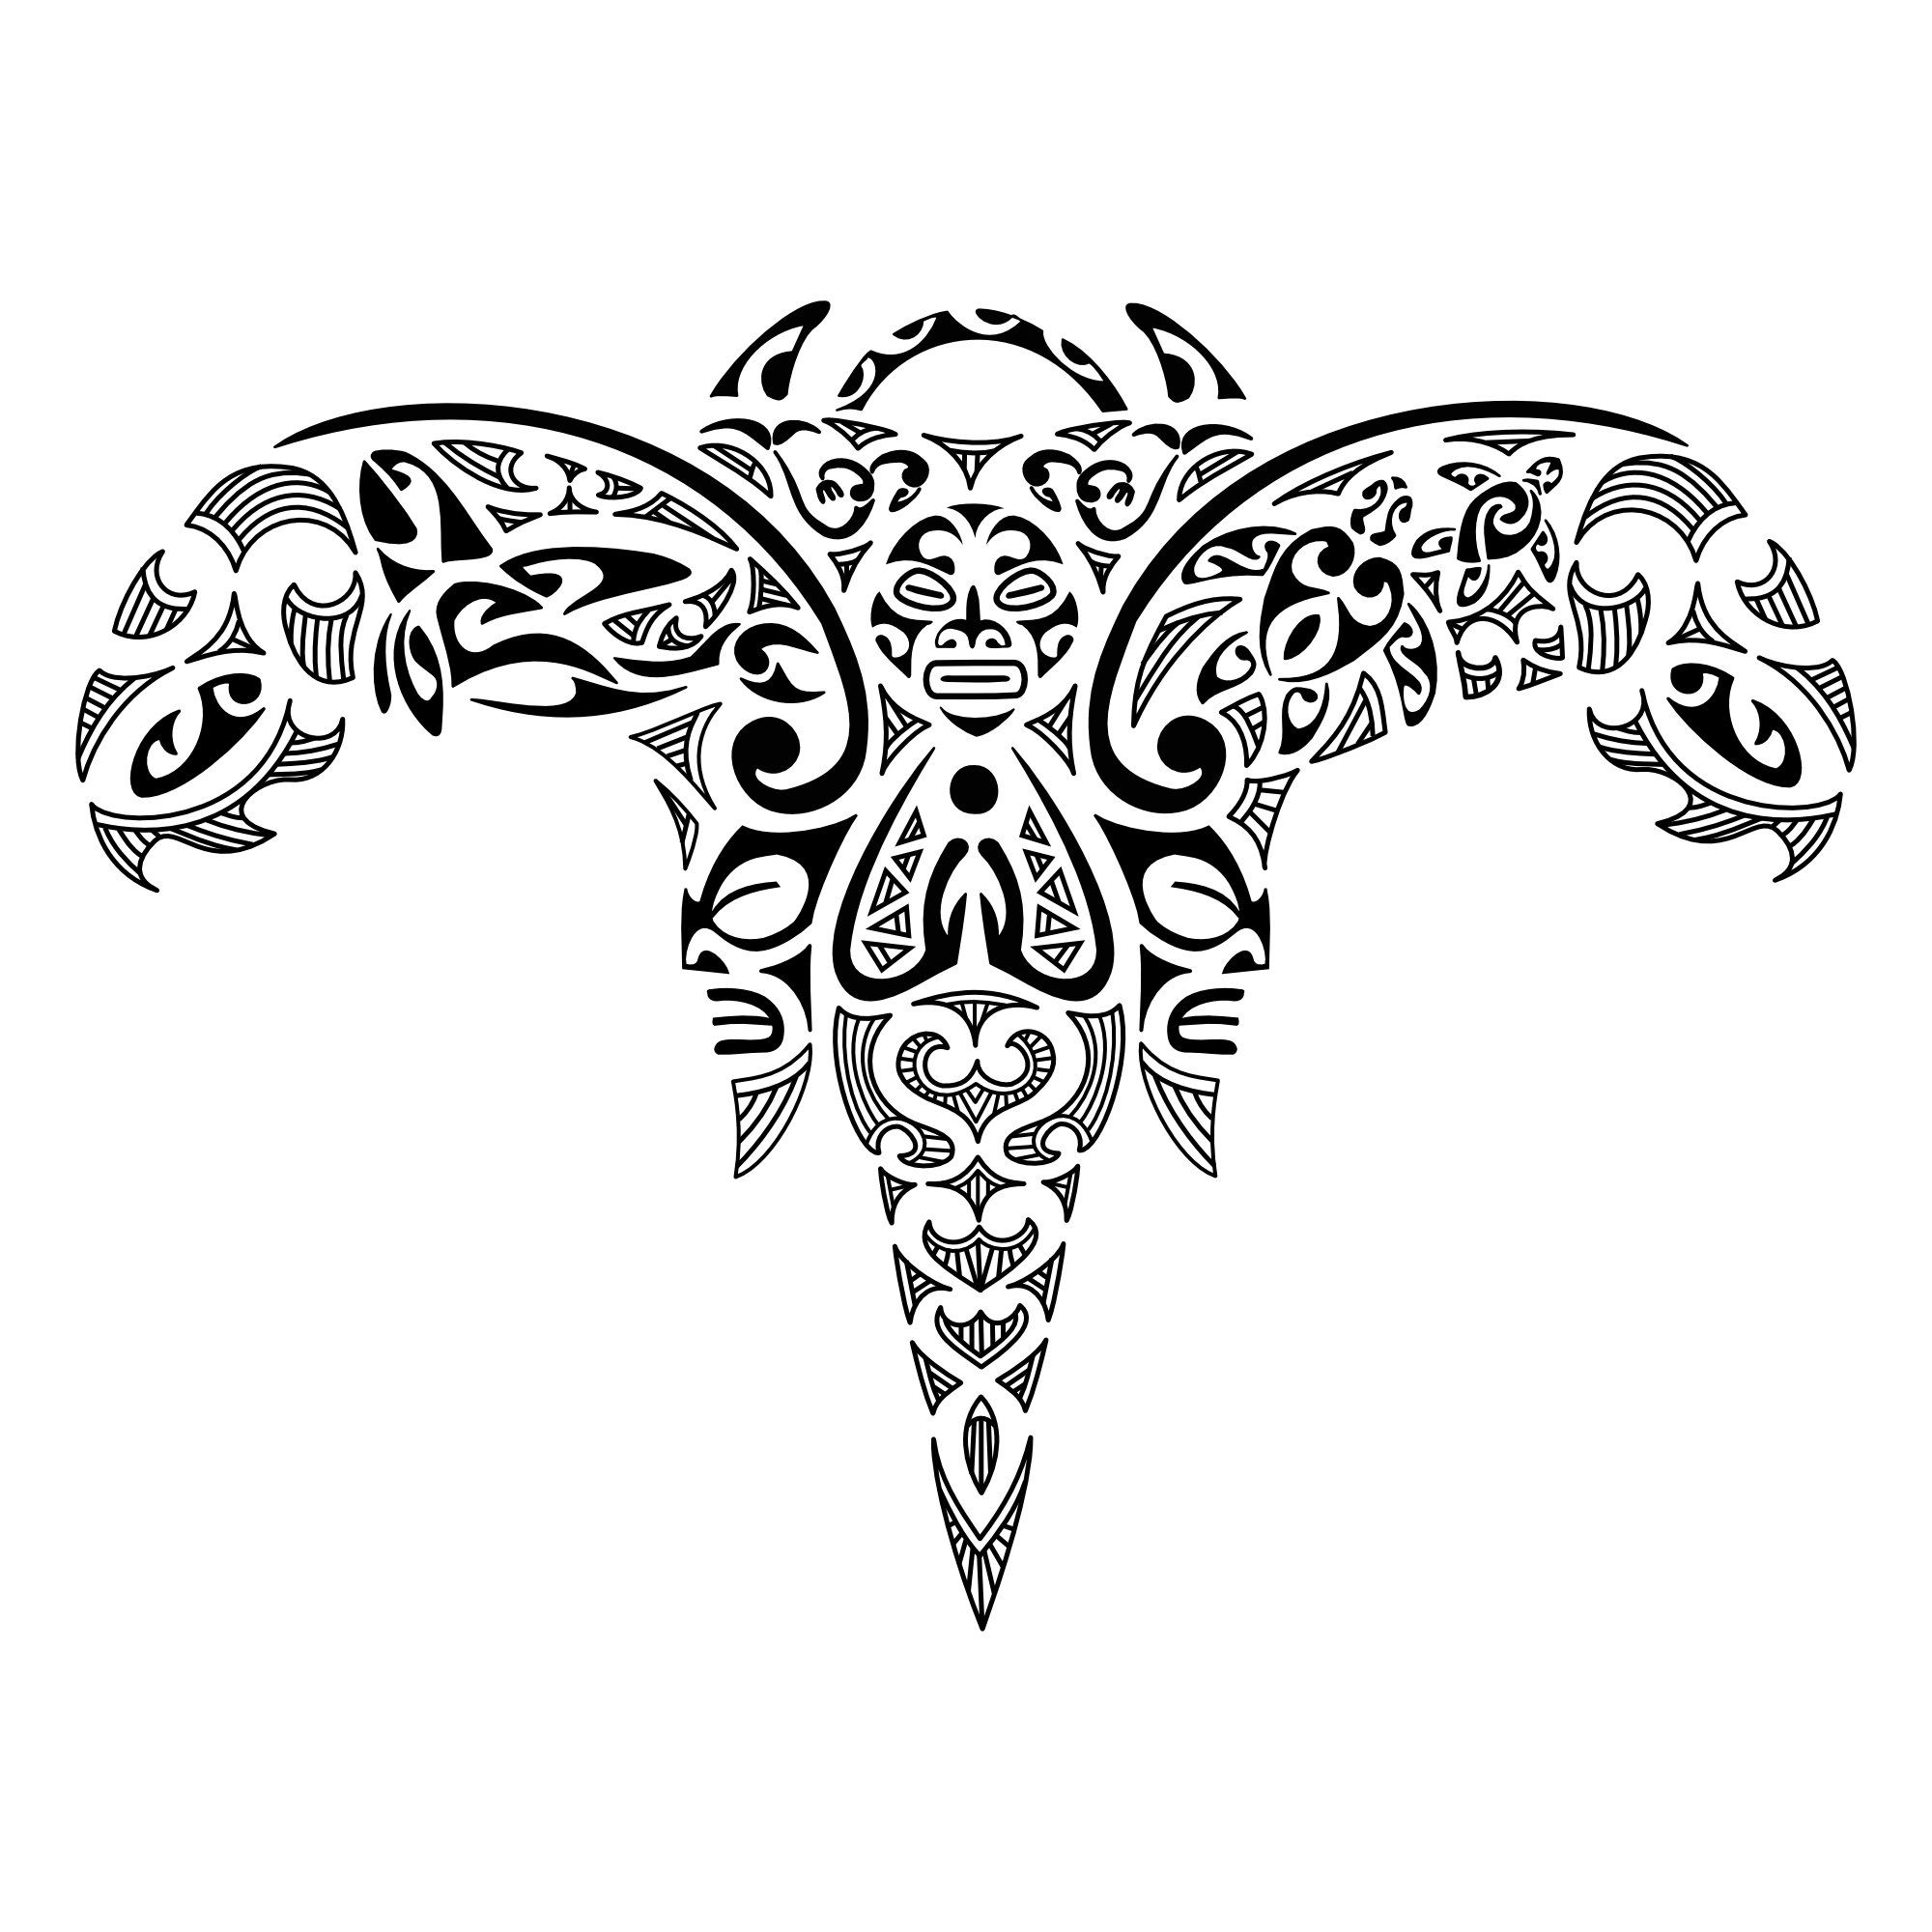 maori art maori angel piece tattoo maori polynesian pinterest maori art turtles and. Black Bedroom Furniture Sets. Home Design Ideas